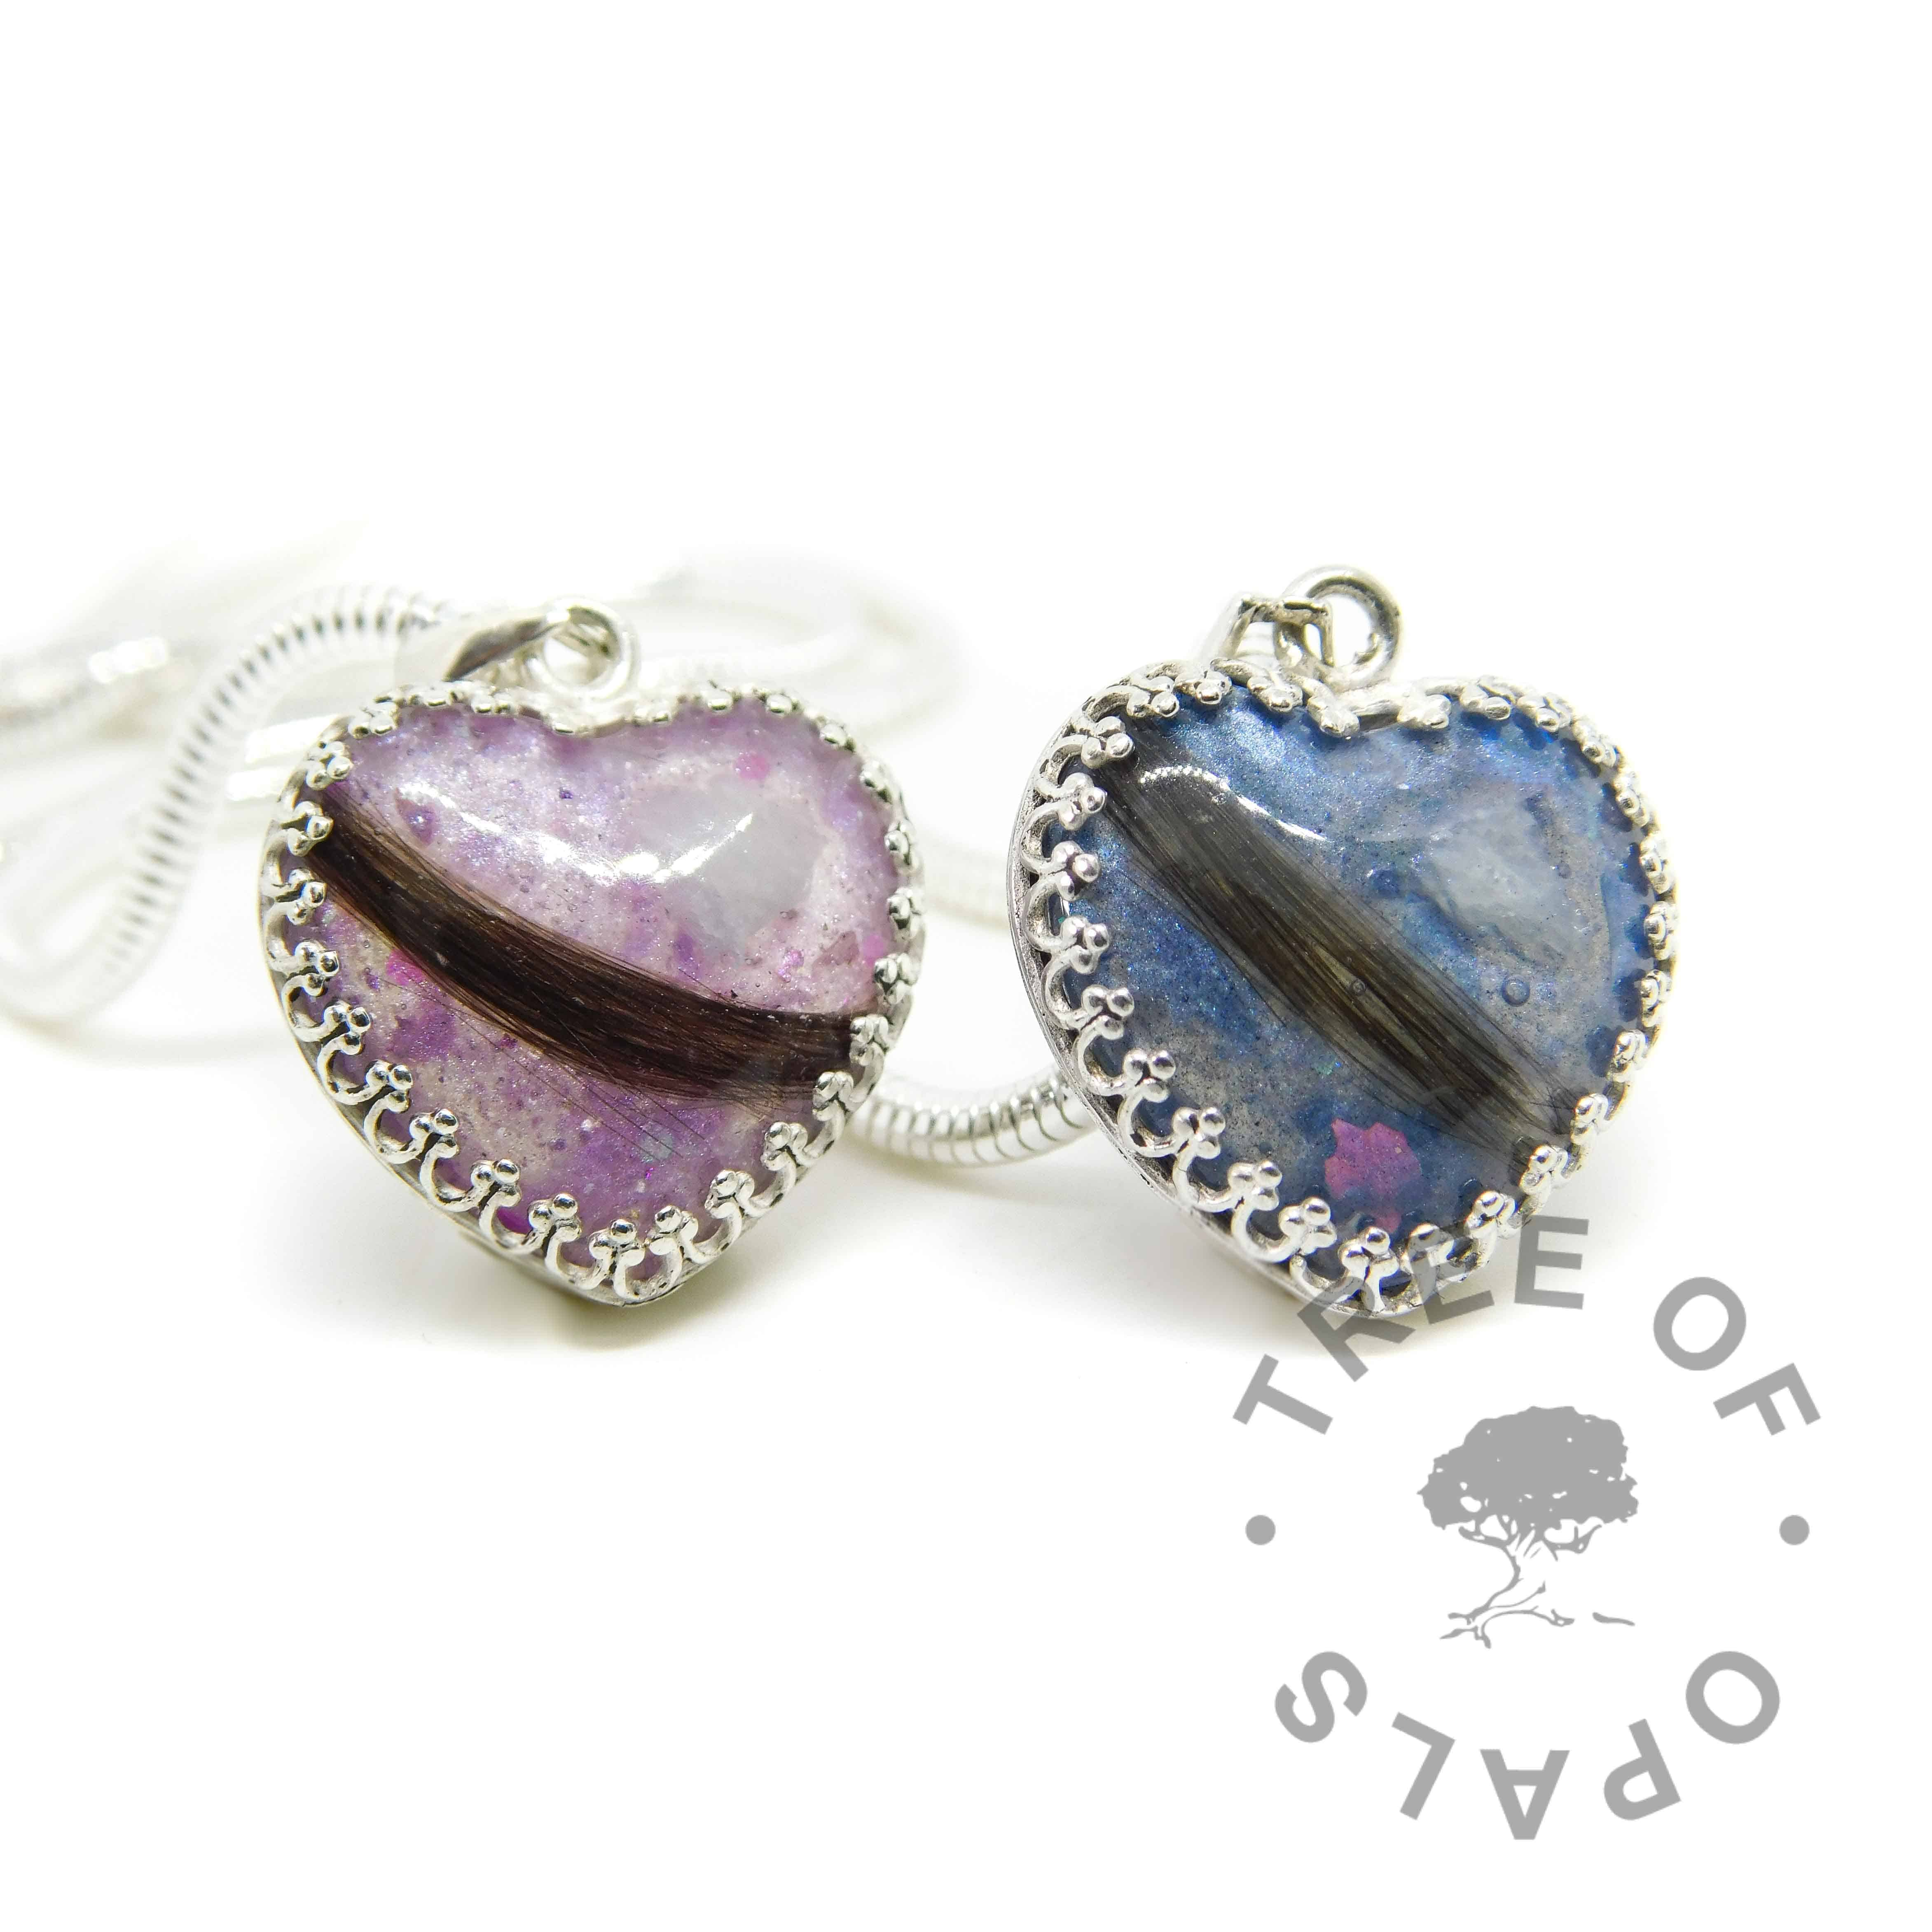 lock of hair heart necklaces with aquamarine March birthstone, Aegean blue and orchid purple resin sparkle mixes. 18mm heart with solid sterling silver crown point setting. Shown with wide snake chain upgrade. Copyright watermarked image